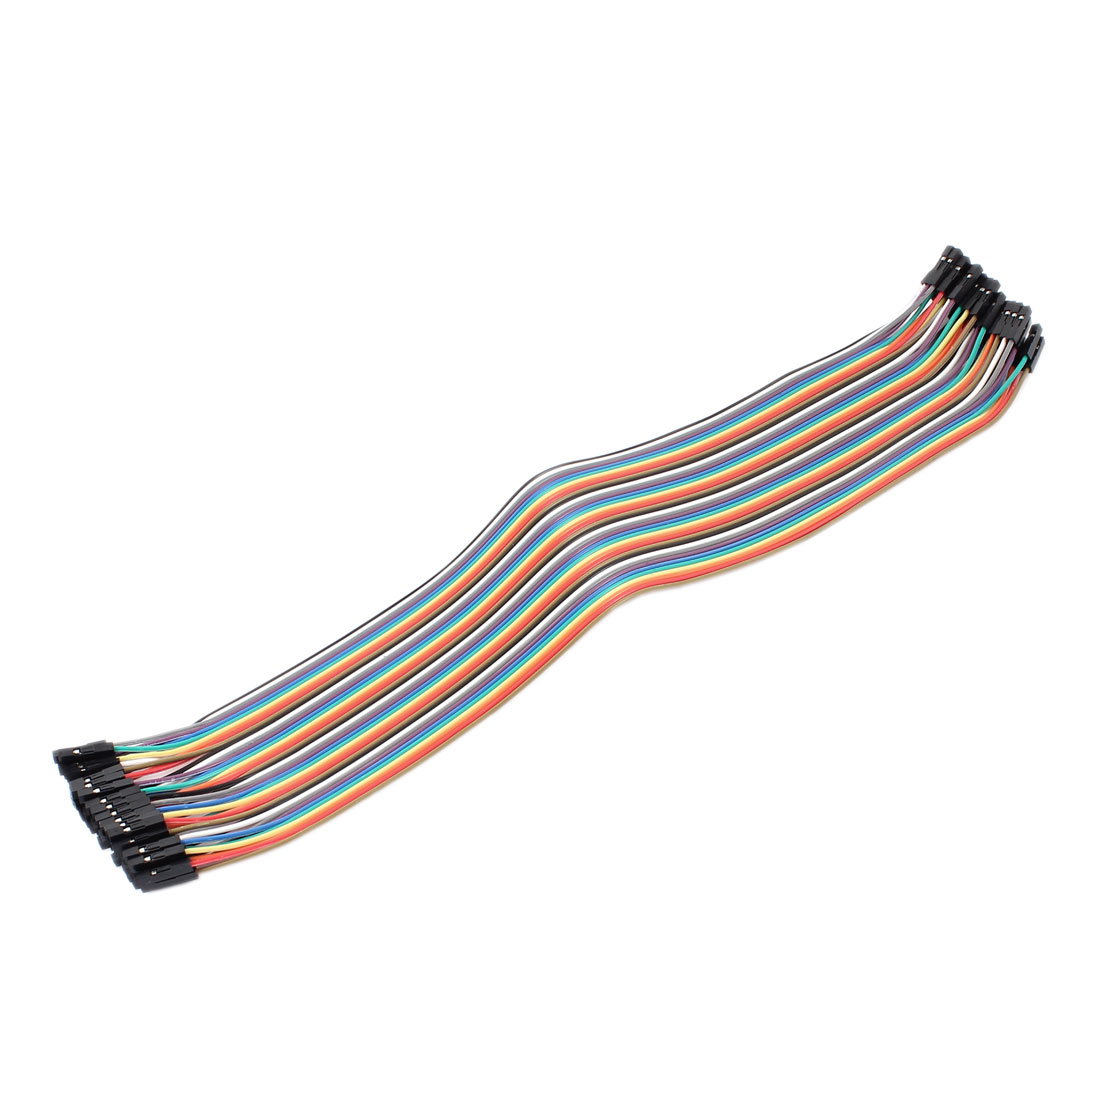 30cm Length Double Head 40pin 40P-40P F/F Connector Jumper Cable Wire Multicolor